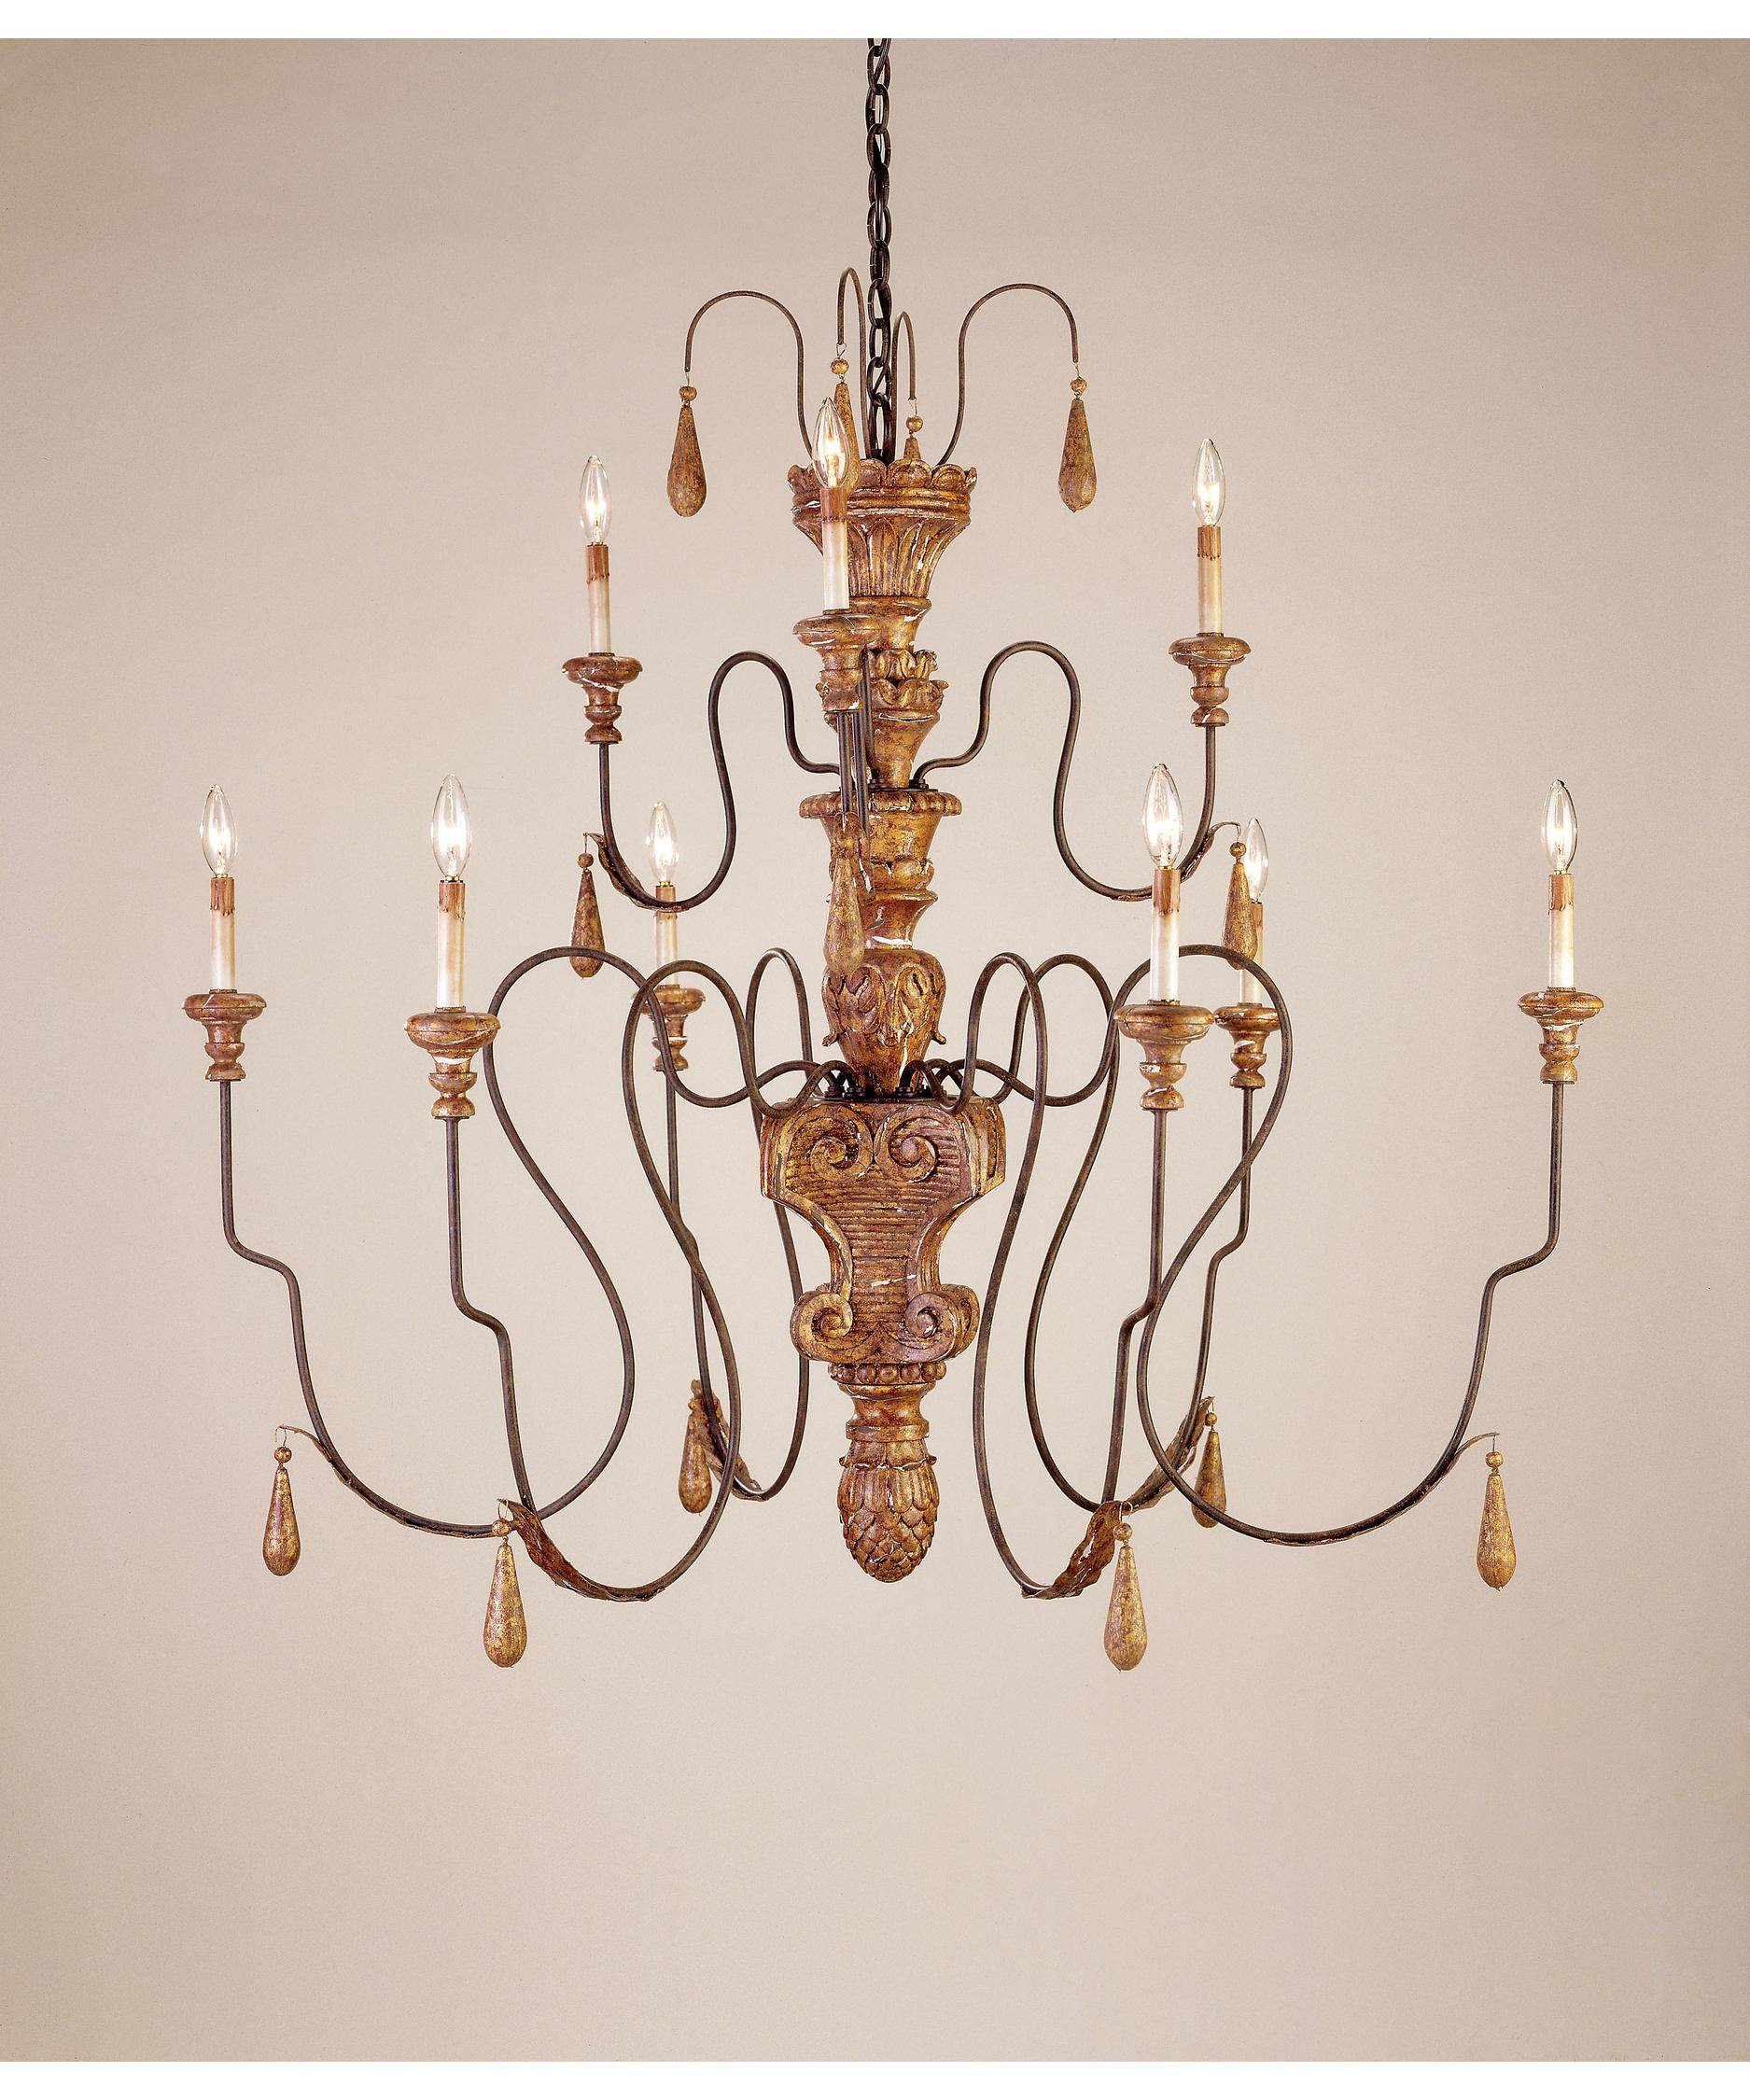 Currey and Company Mansion 48 Inch Wide 9 Light Chandelier – Currey and Company Lighting Chandeliers